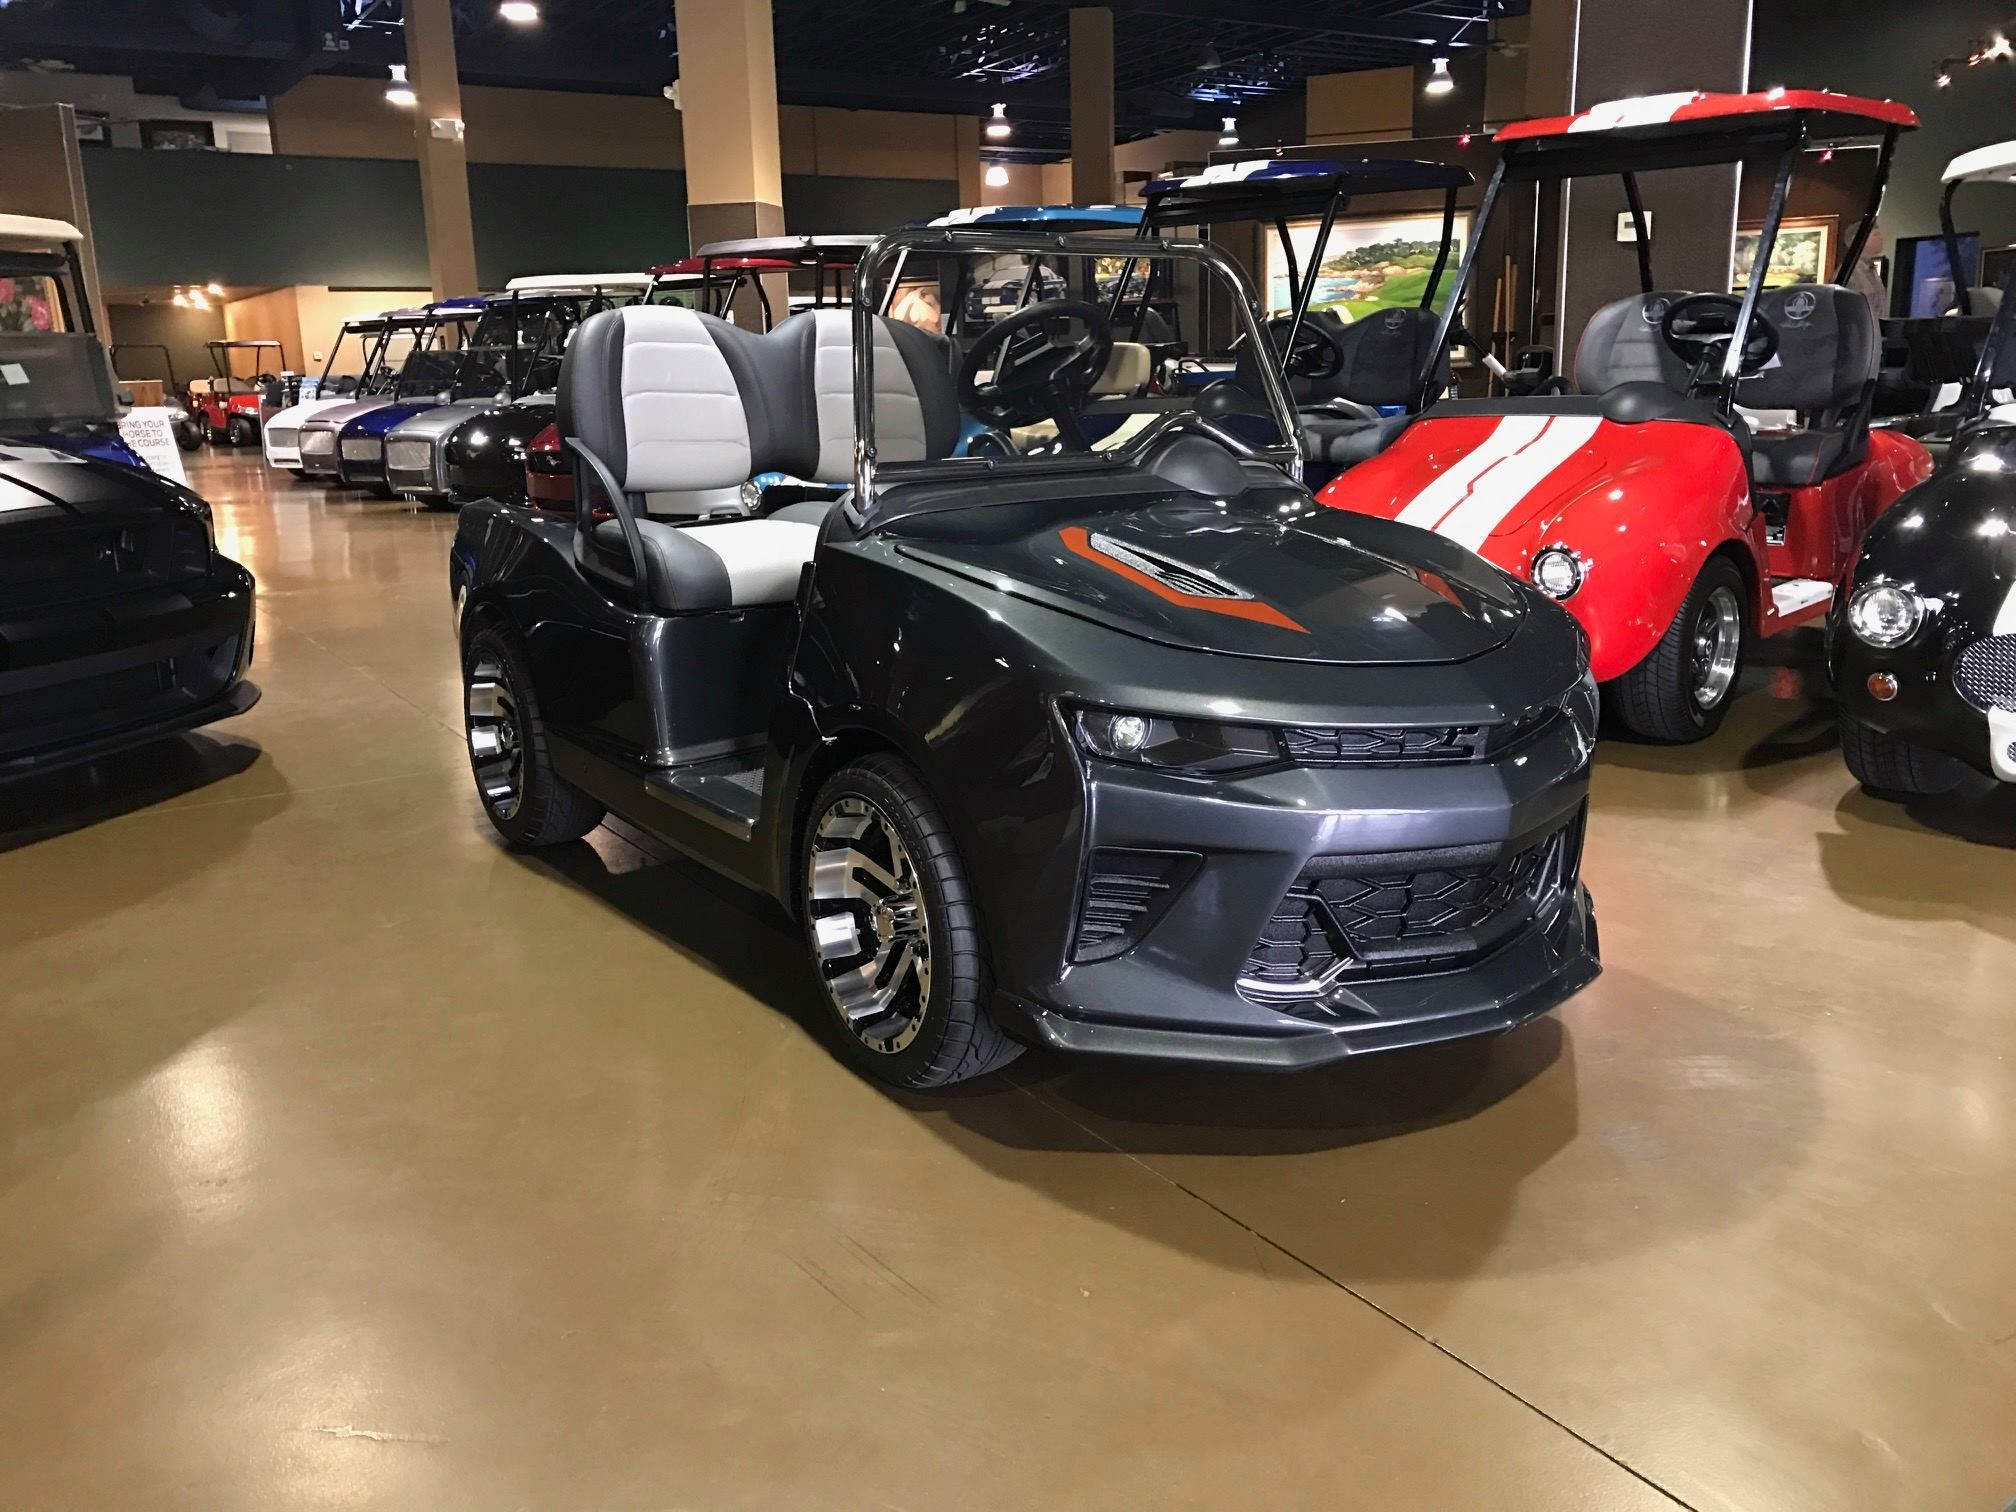 Caddyshack S New 2017 Chevy Camaro Fifty Golf Cart Officially Licensed By General Motors Golf Carts Custom Golf Carts Used Golf Carts